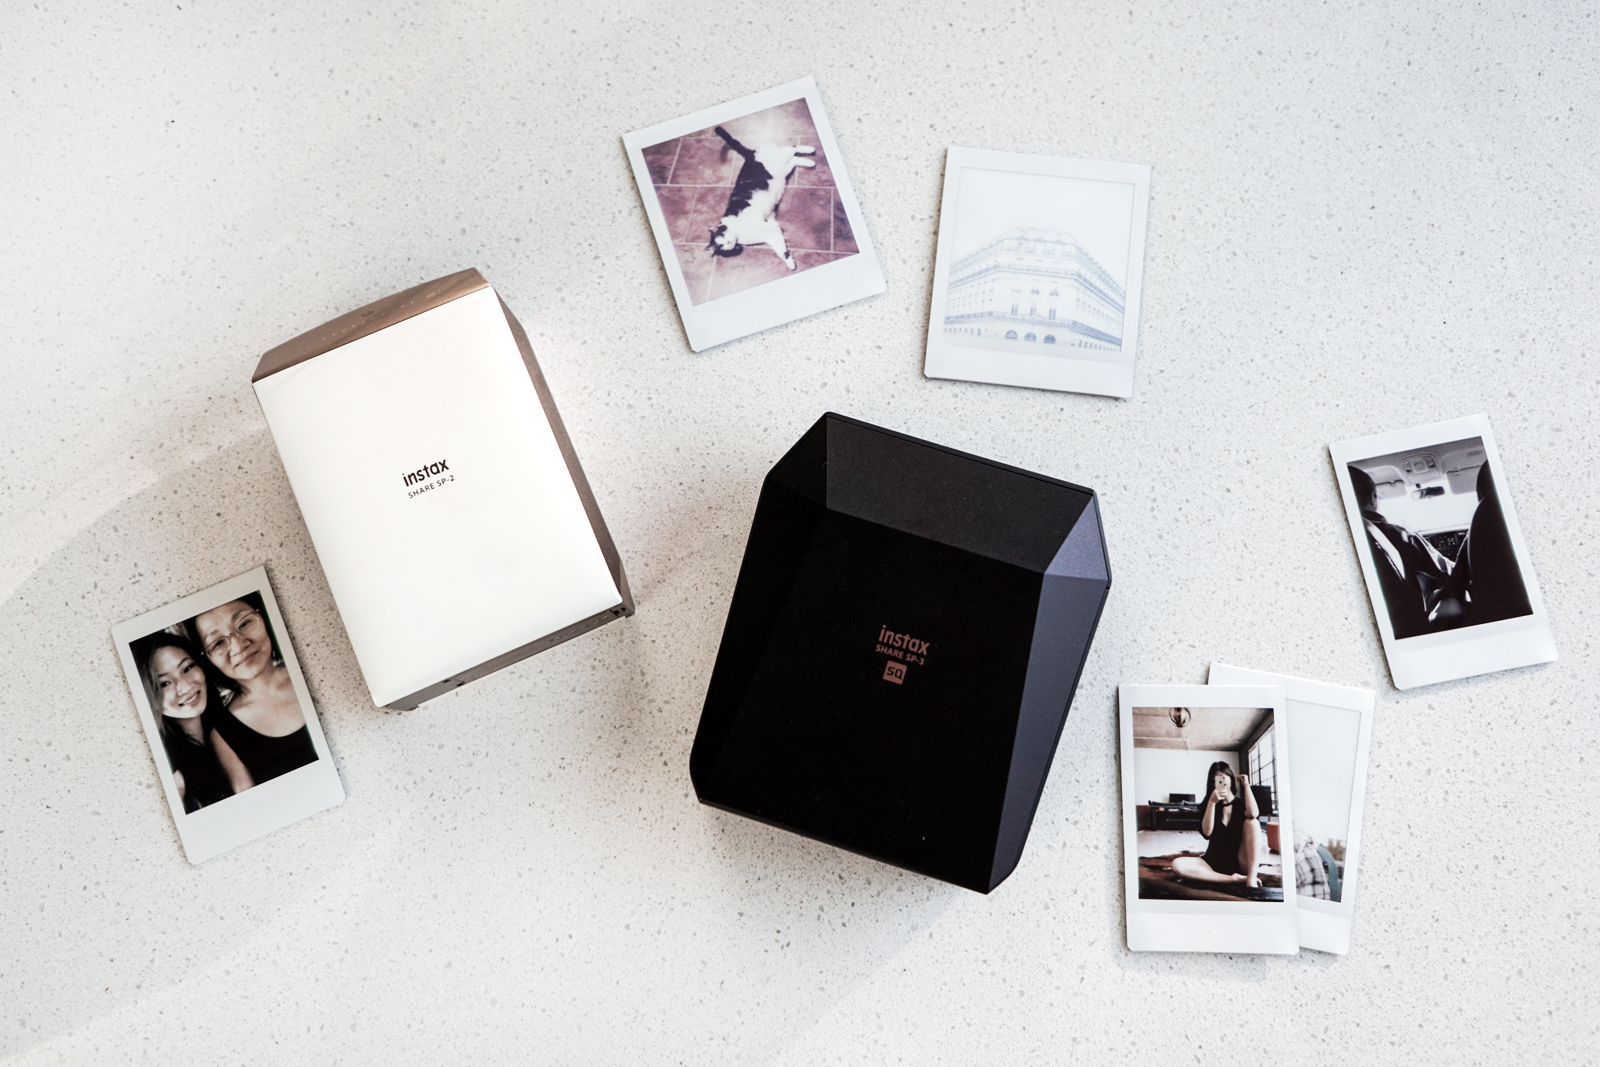 Instax Share et Square - les photos